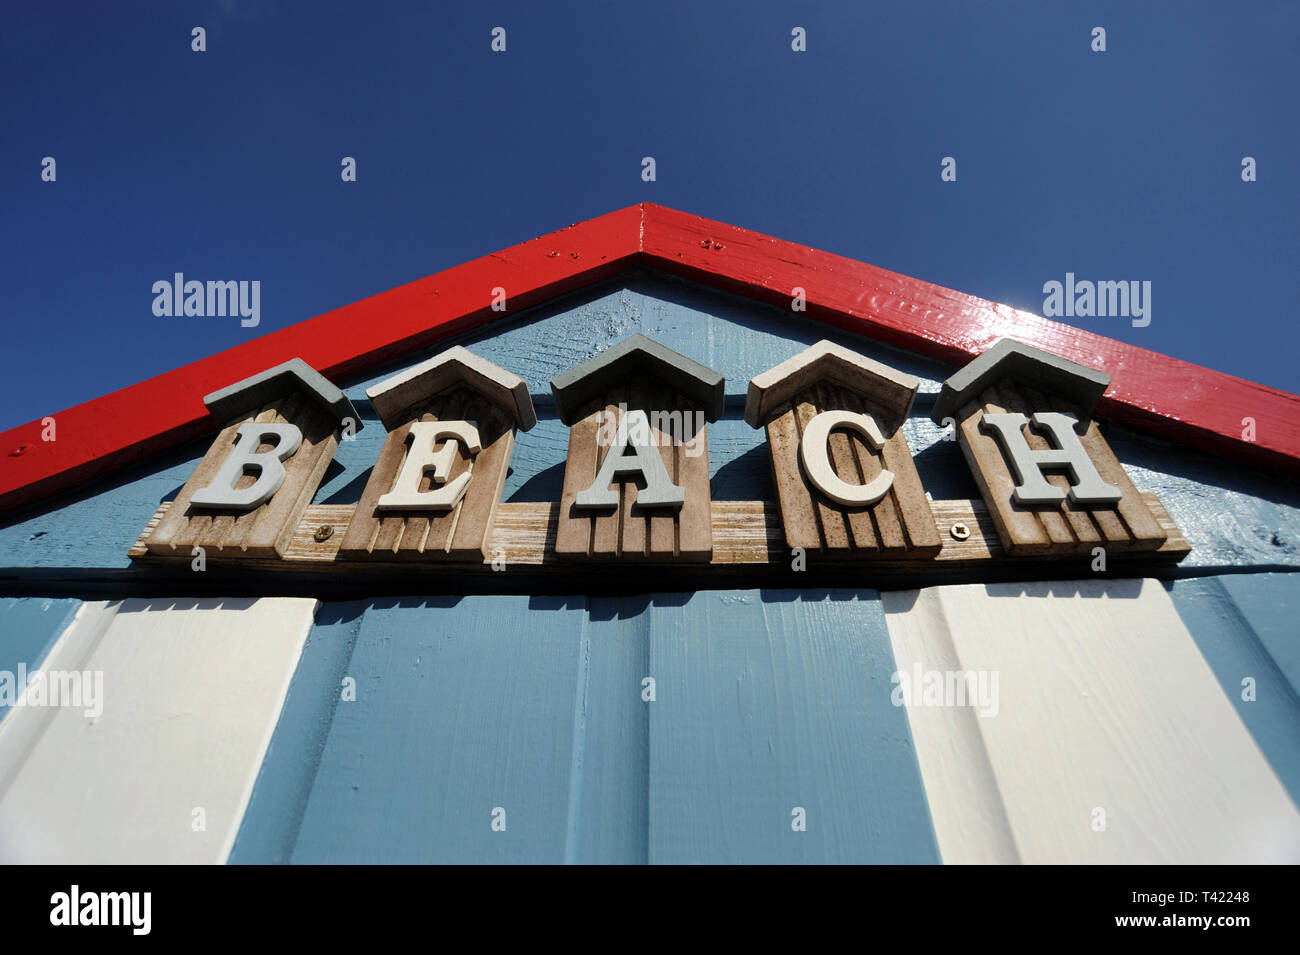 BEACH HUT WITH 'BEACH' SIGN AND BLUE SKY RE HOLIDAYS SUNSHINE WEATHER RELAXING ETC UK - Stock Image